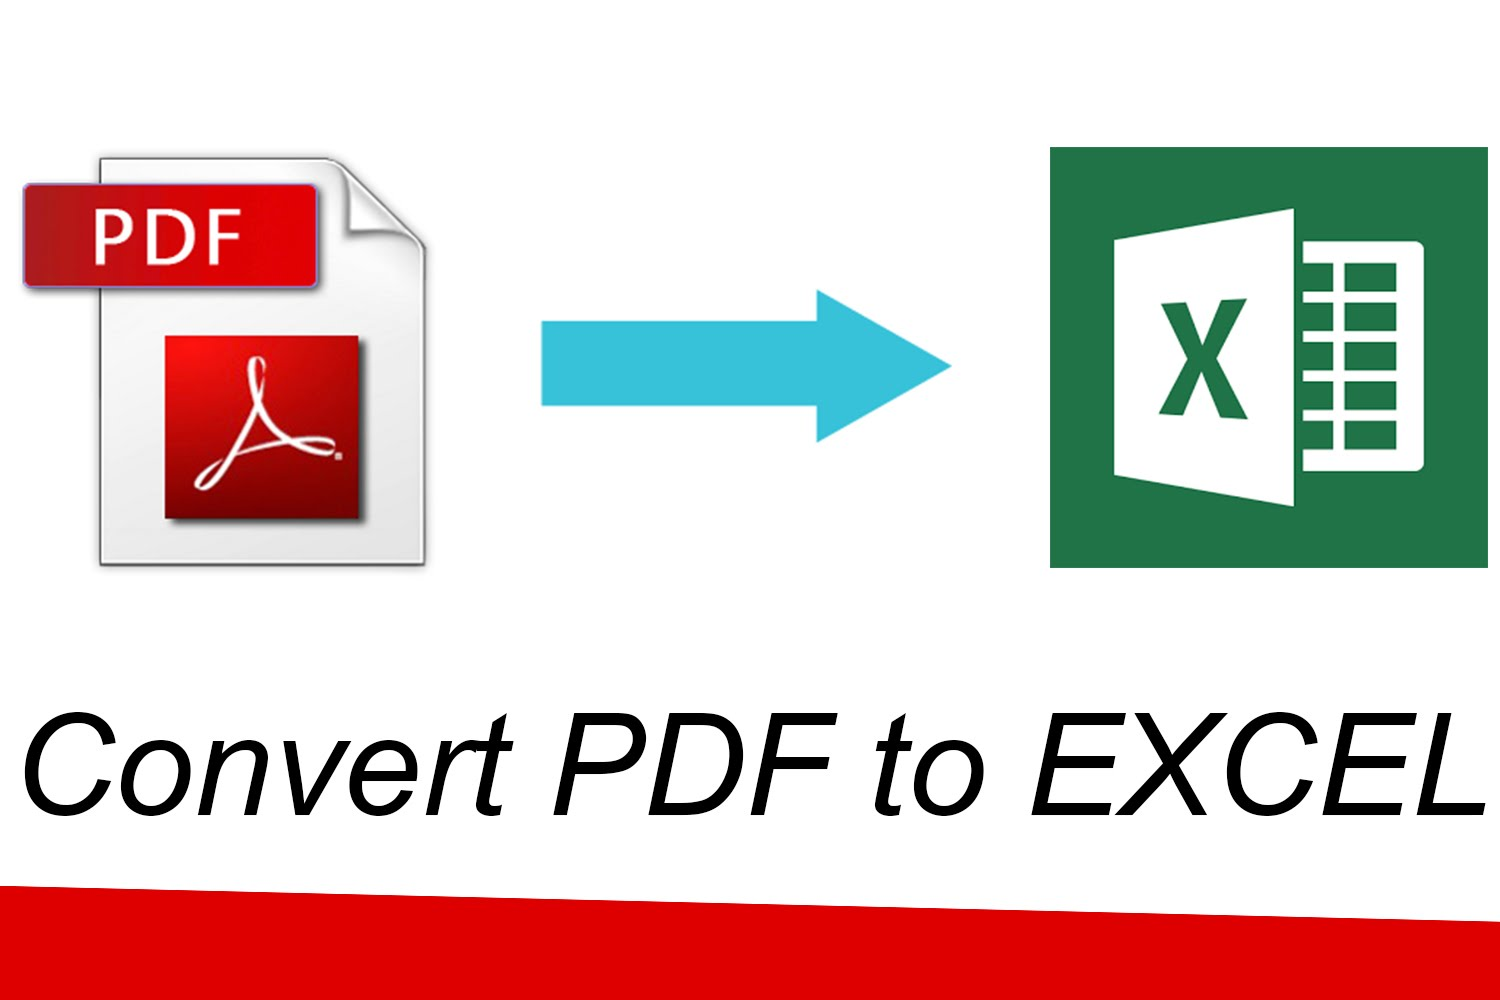 Convert To Excel And Word In 24 Hrs For 15